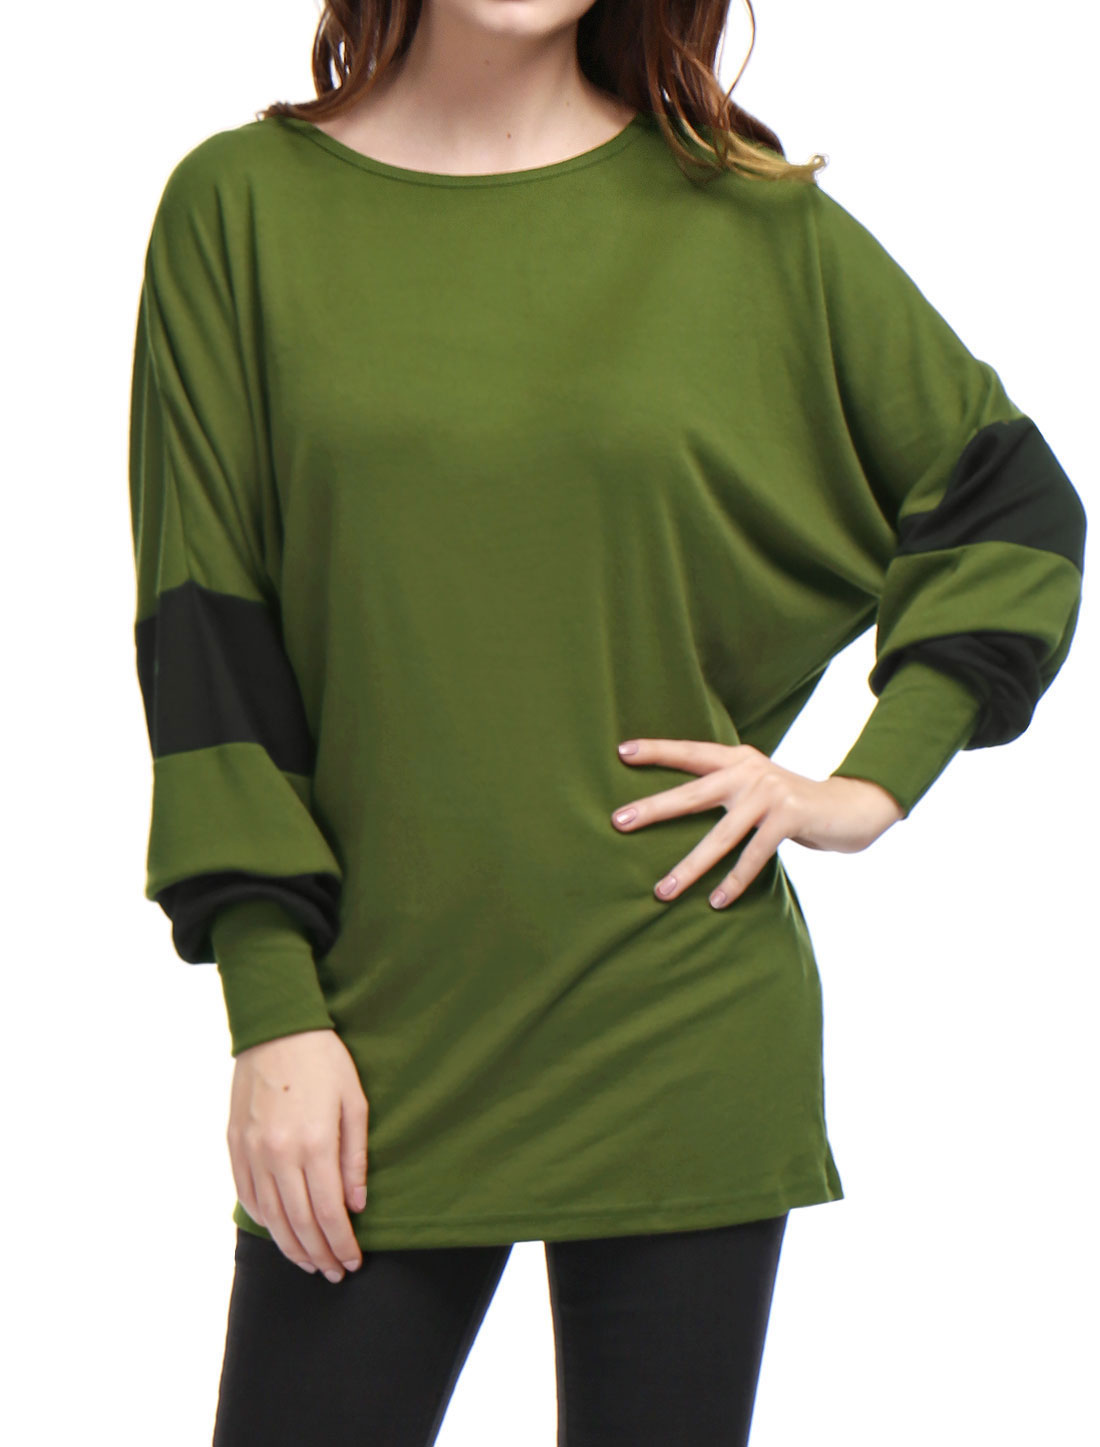 Women Color Block Batwing Loose Tunic Top Green XS